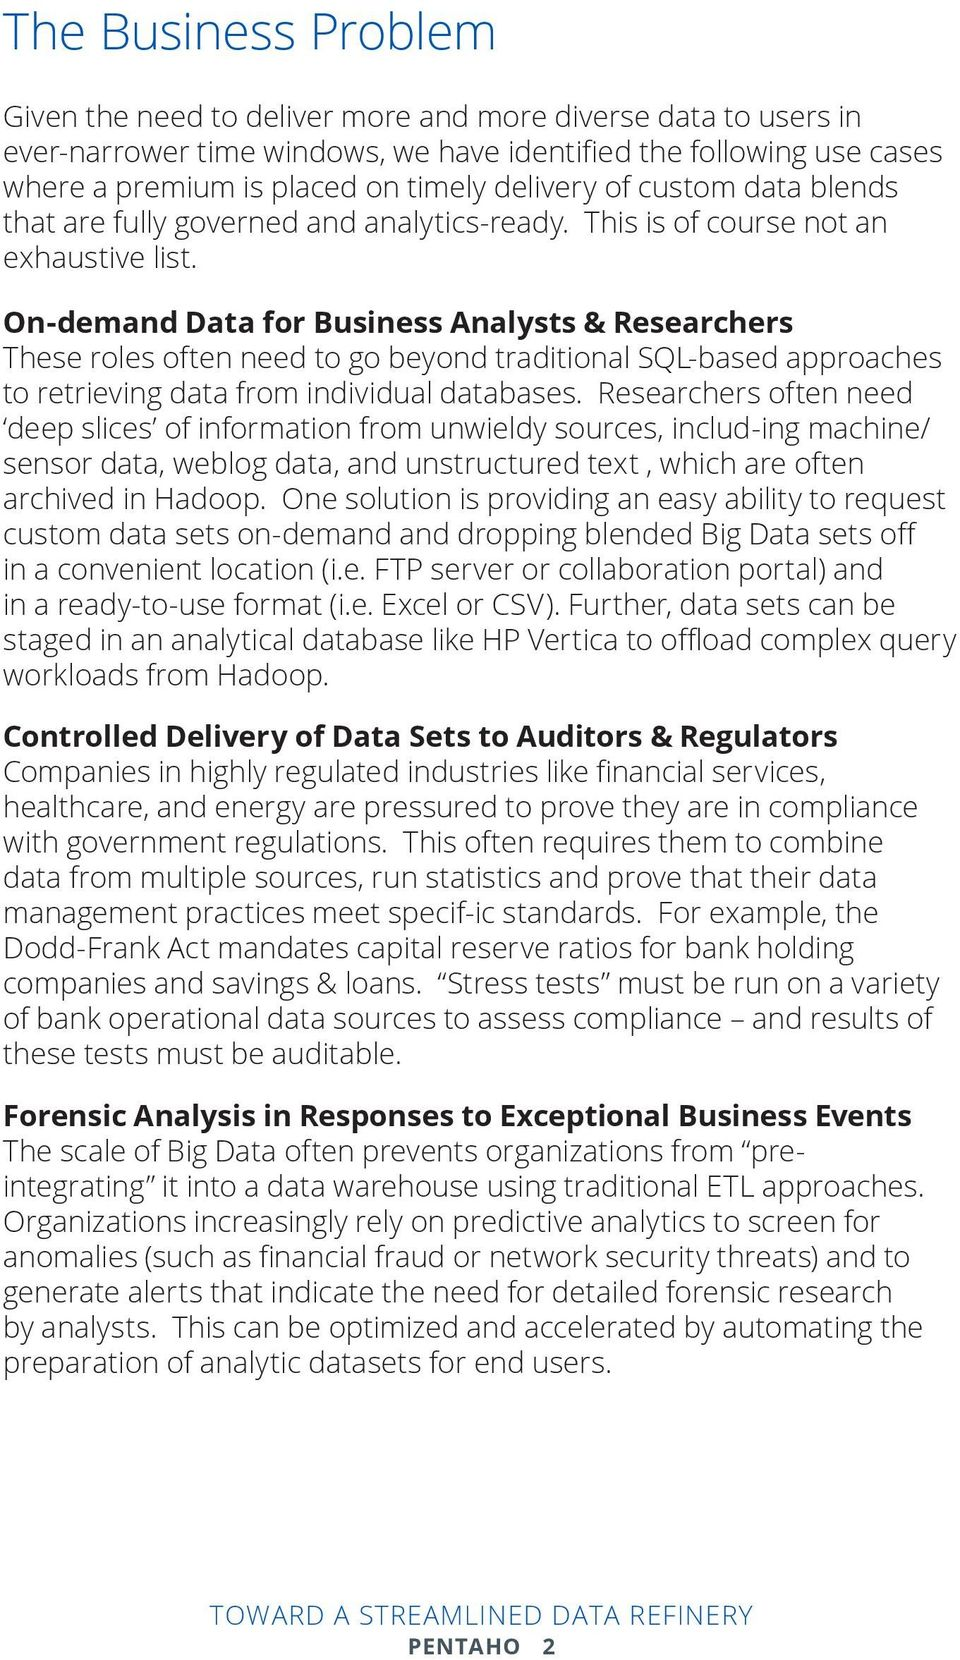 On-demand Data for Business Analysts & Researchers These roles often need to go beyond traditional SQL-based approaches to retrieving data from individual databases.